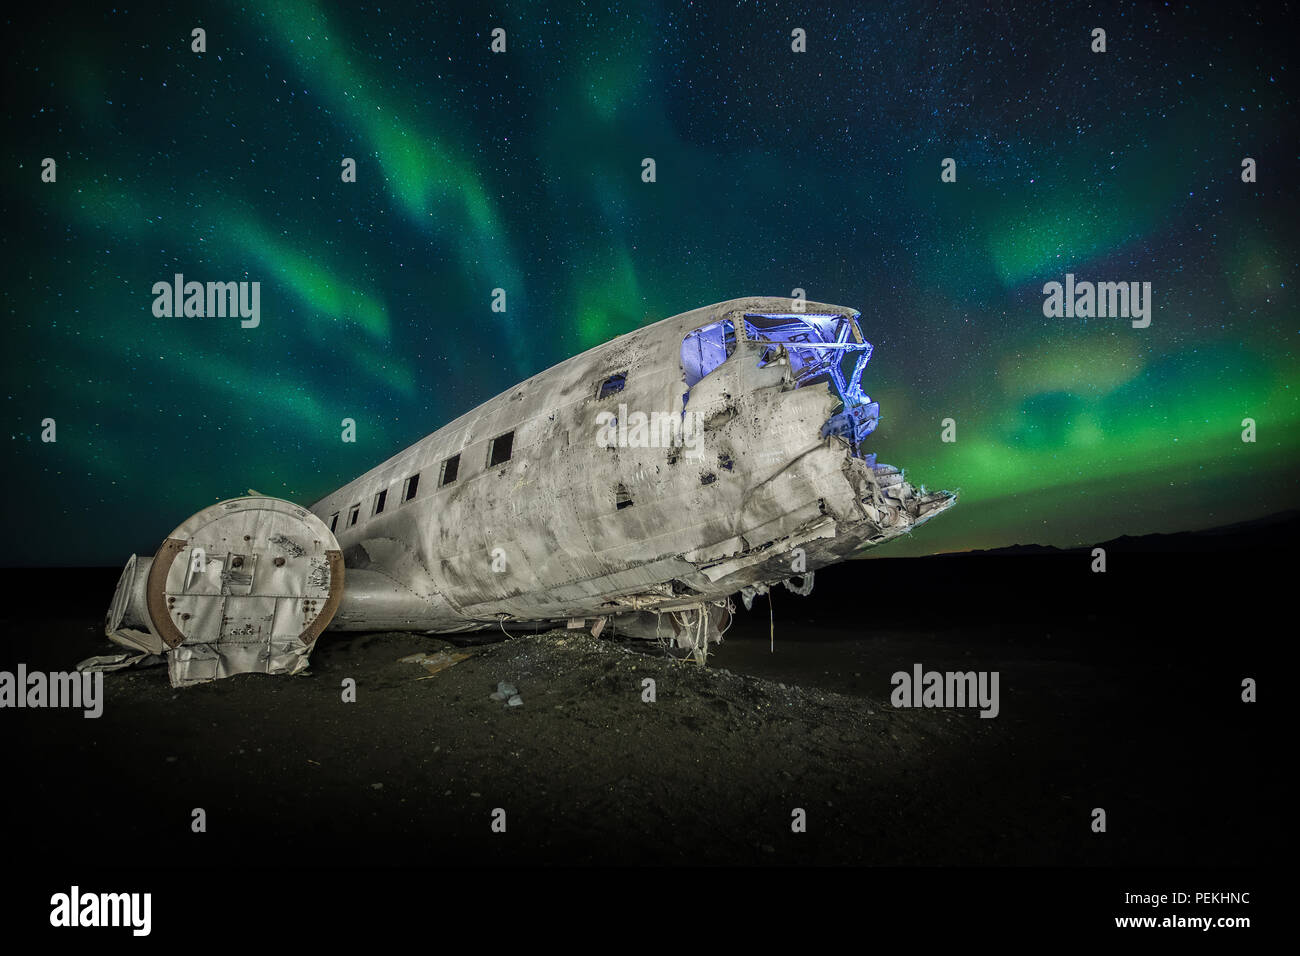 The crashed DC-3 Plane wreck with Northern Lights & Aurora Borealis at Solheimasandur, Iceland - Stock Image